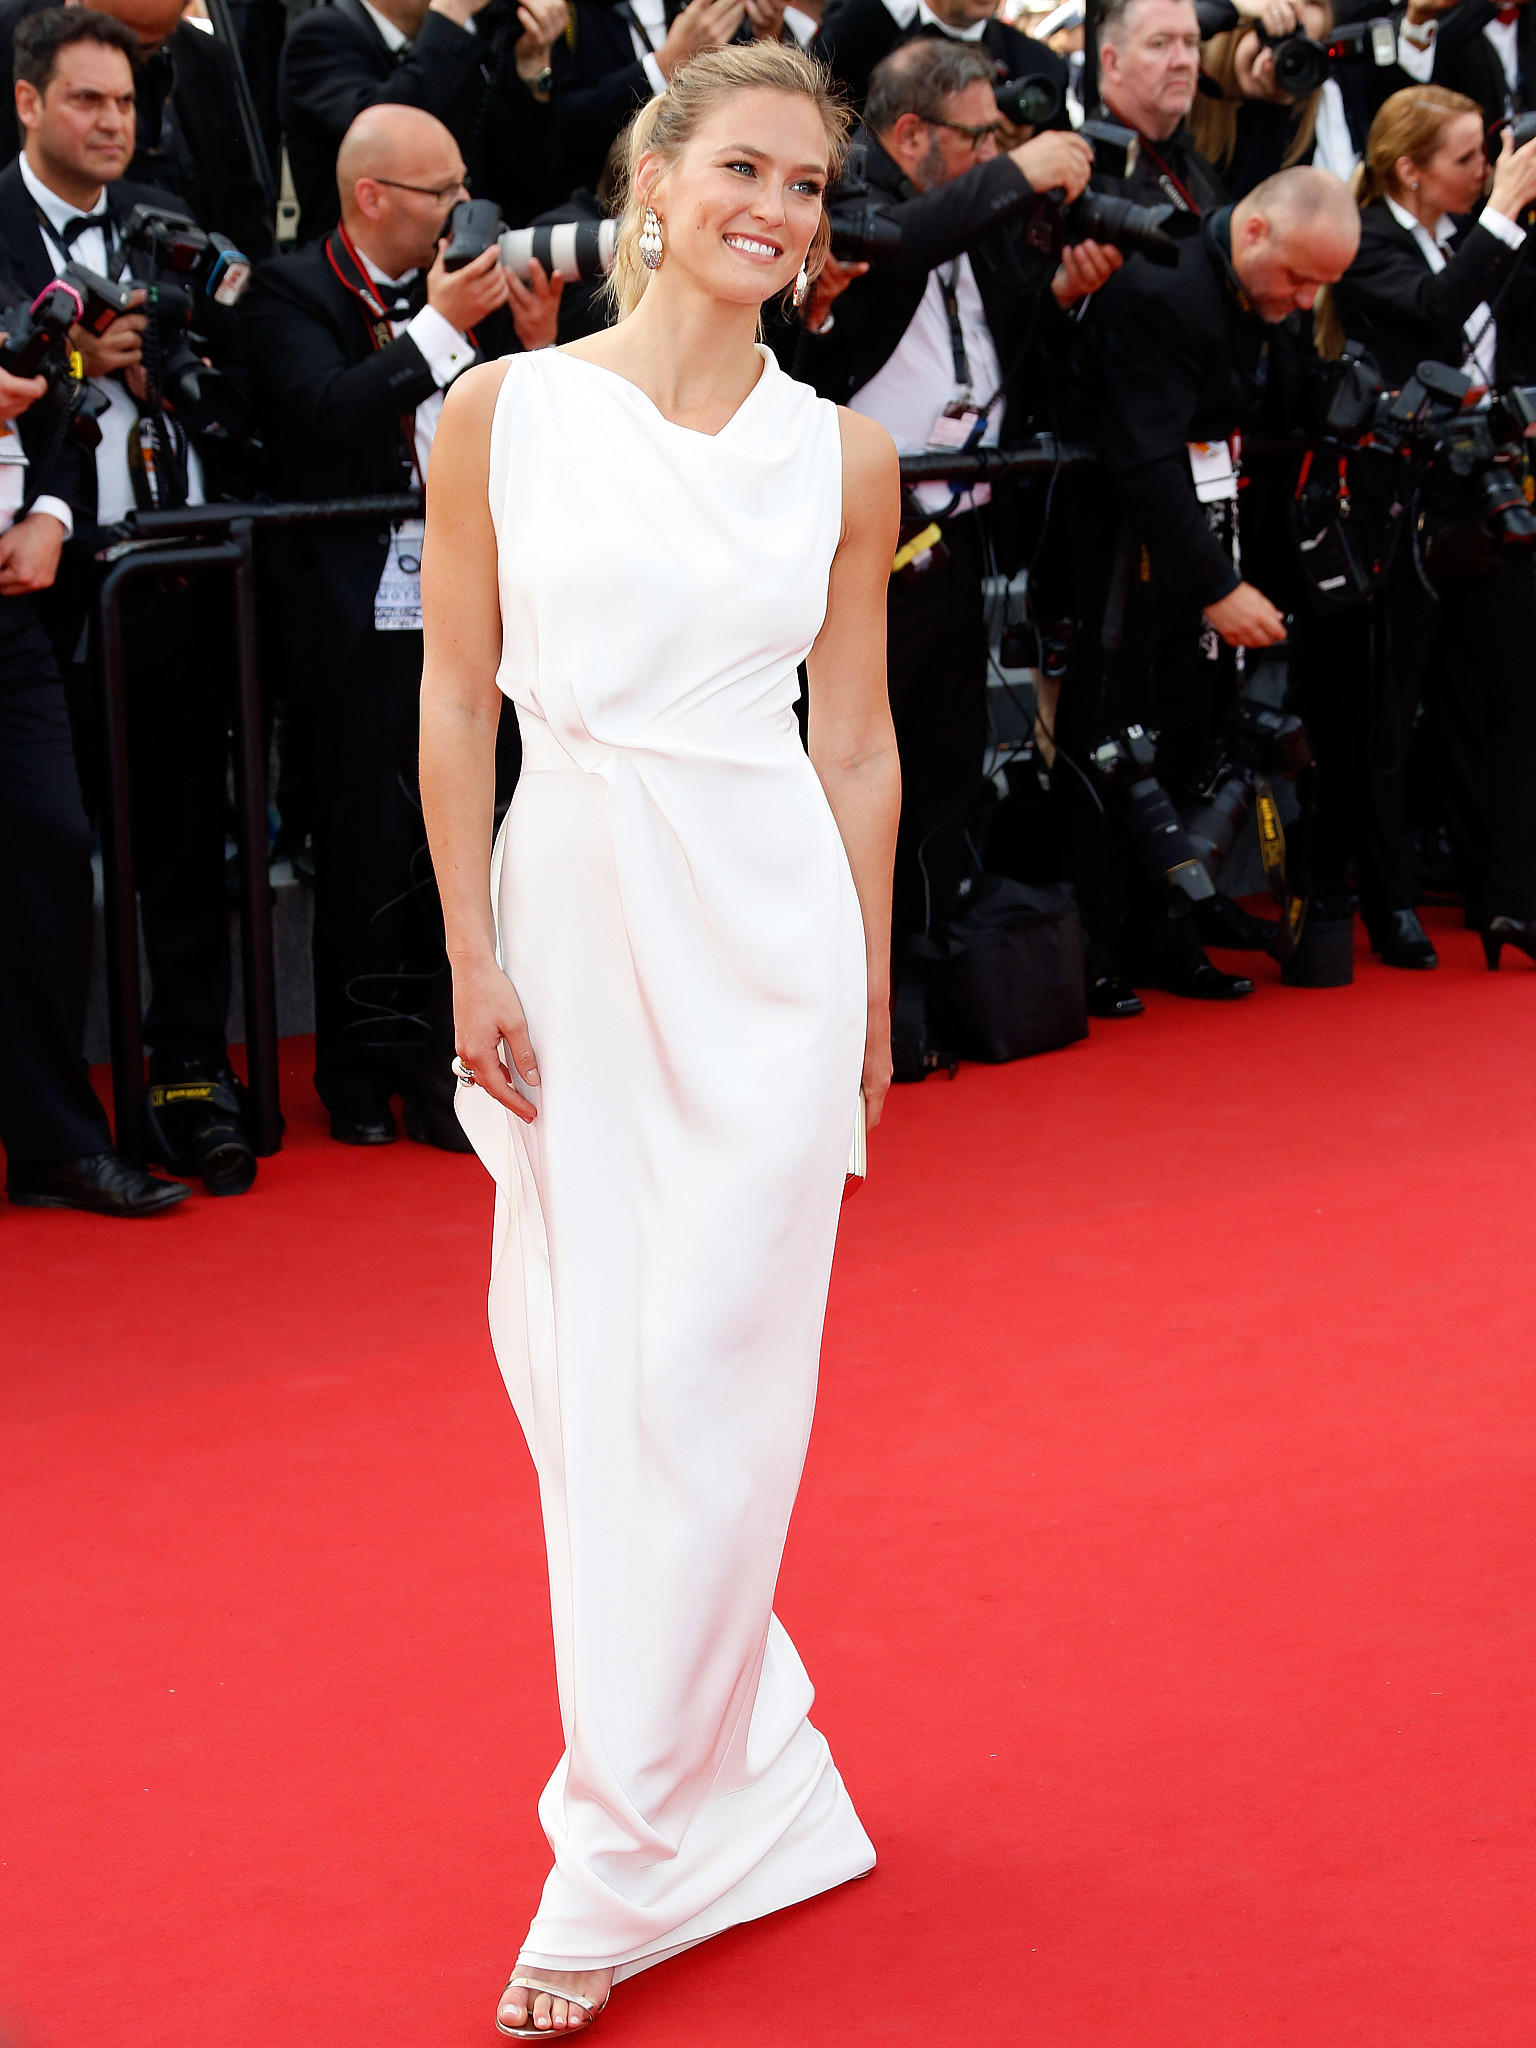 Cannes 2015 Looks